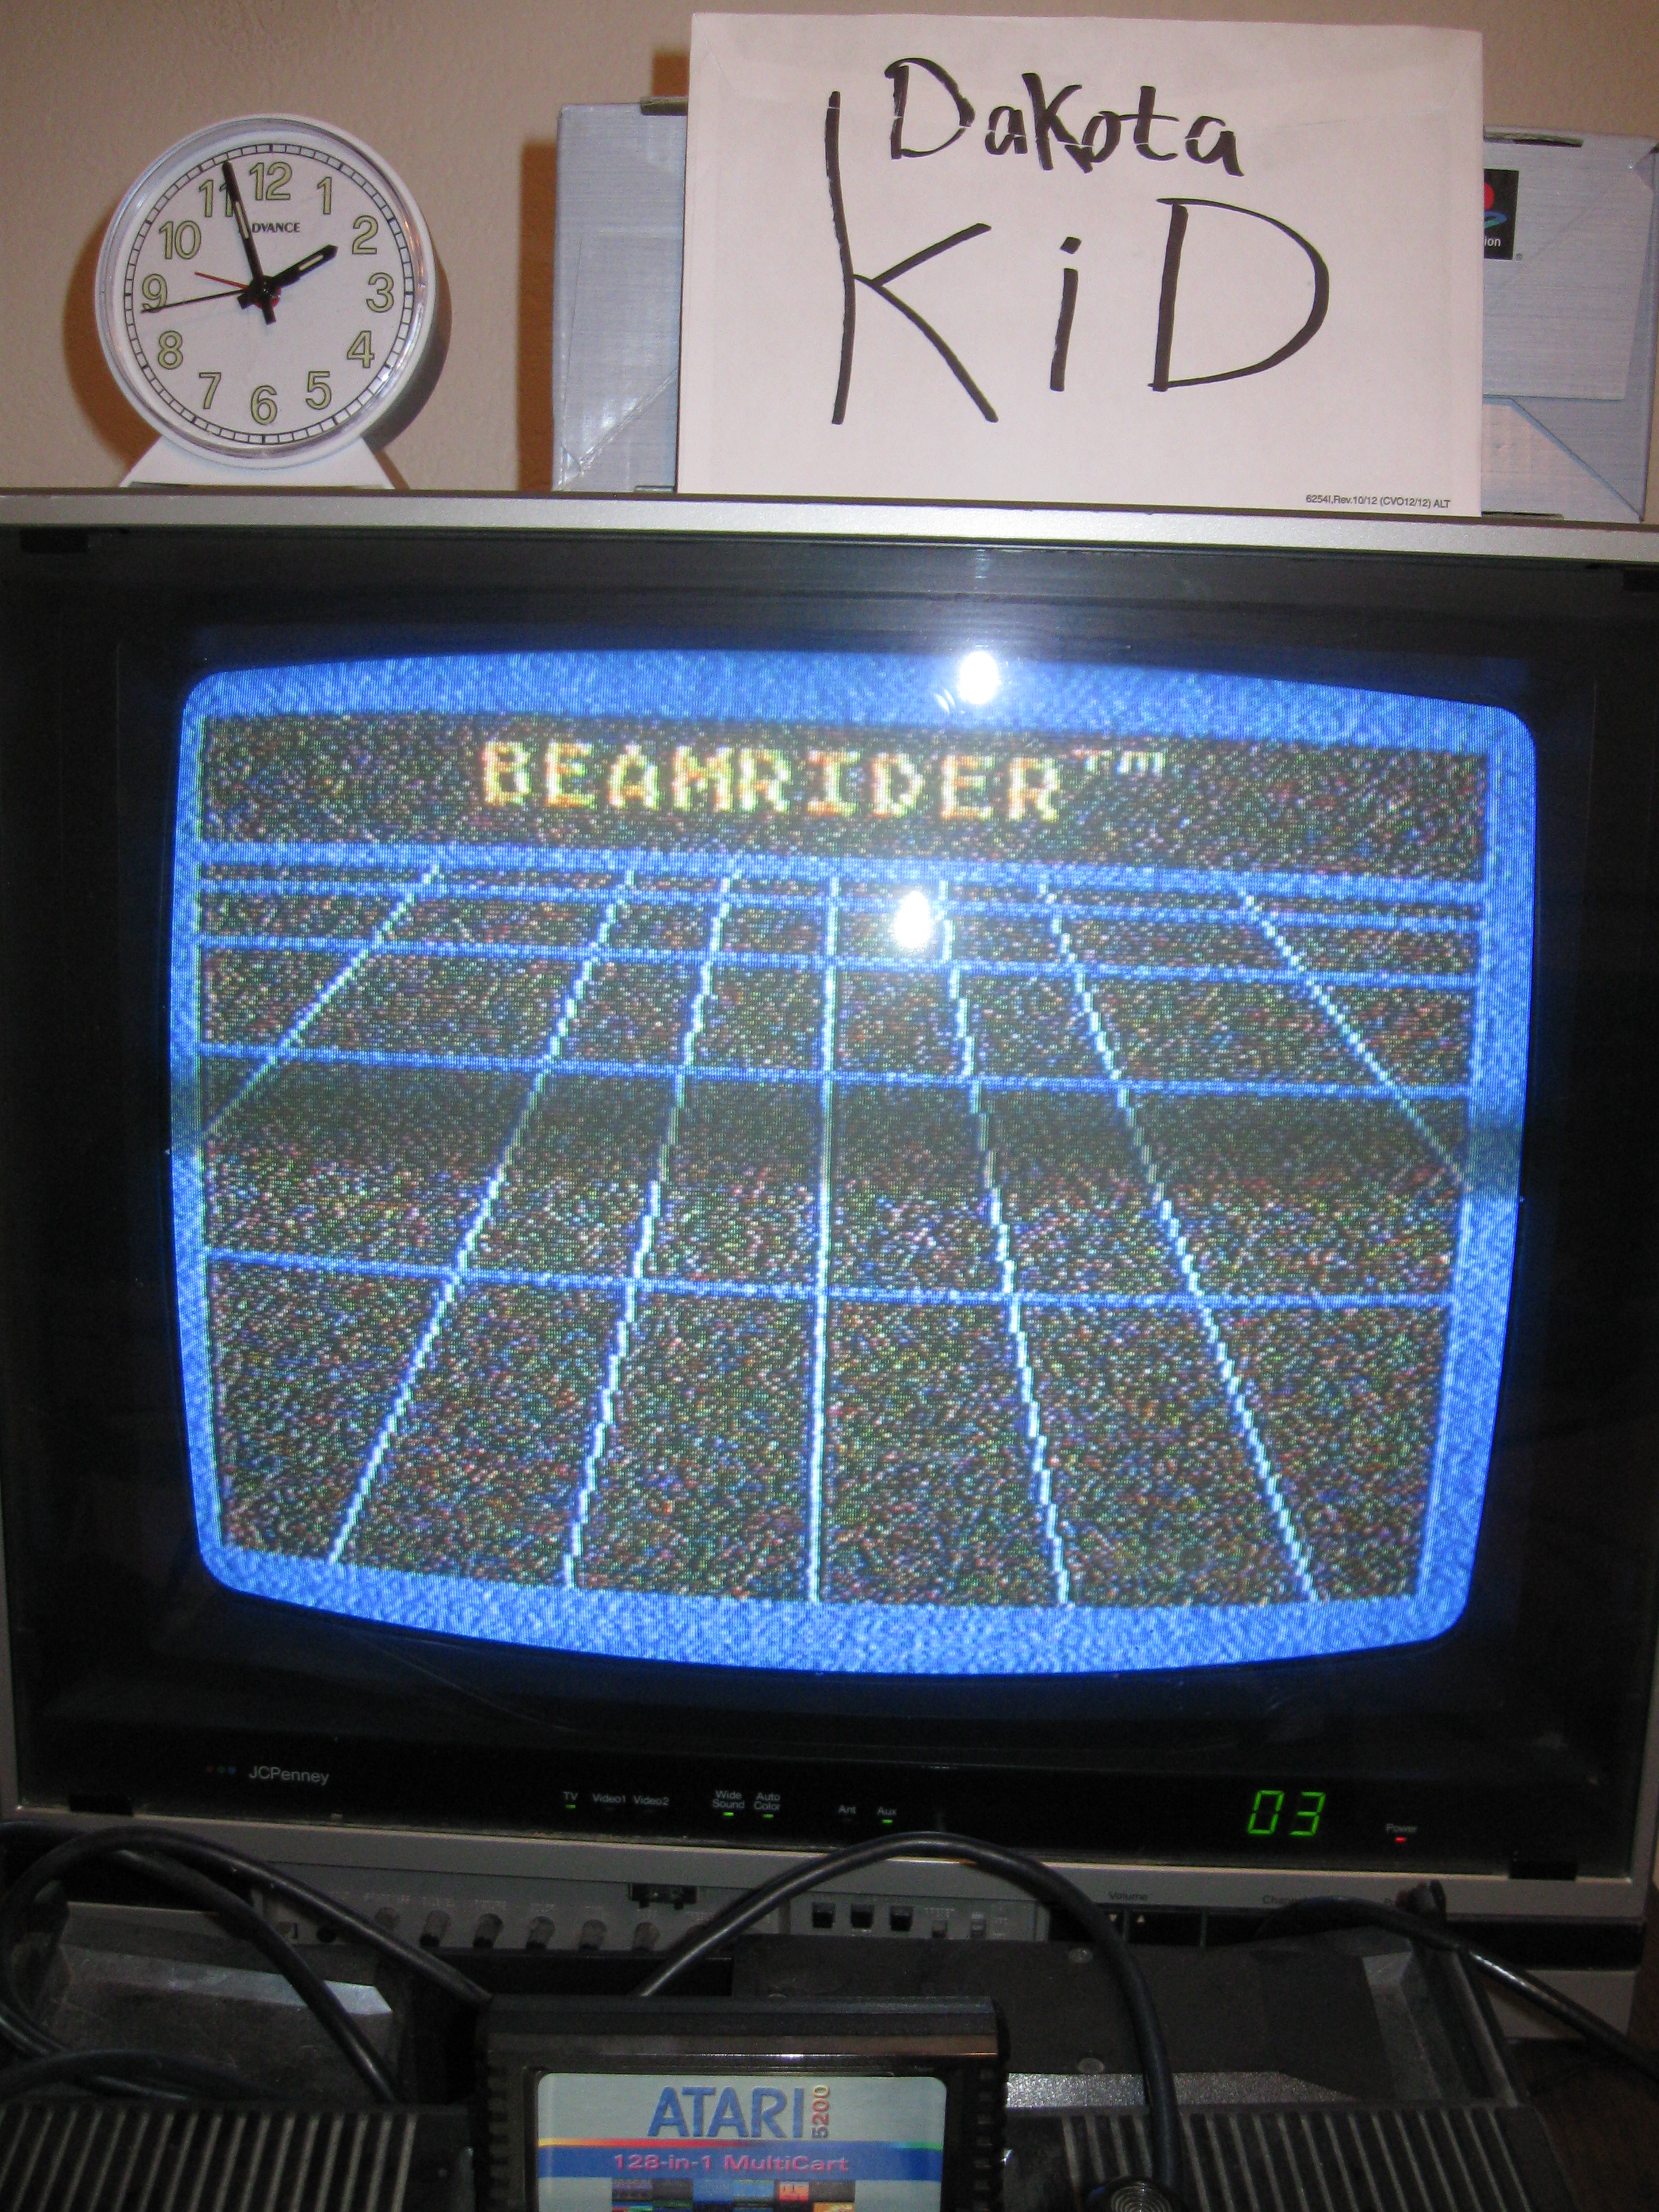 DakotaKid: Beamrider (Atari 5200) 21,074 points on 2016-04-16 16:54:04